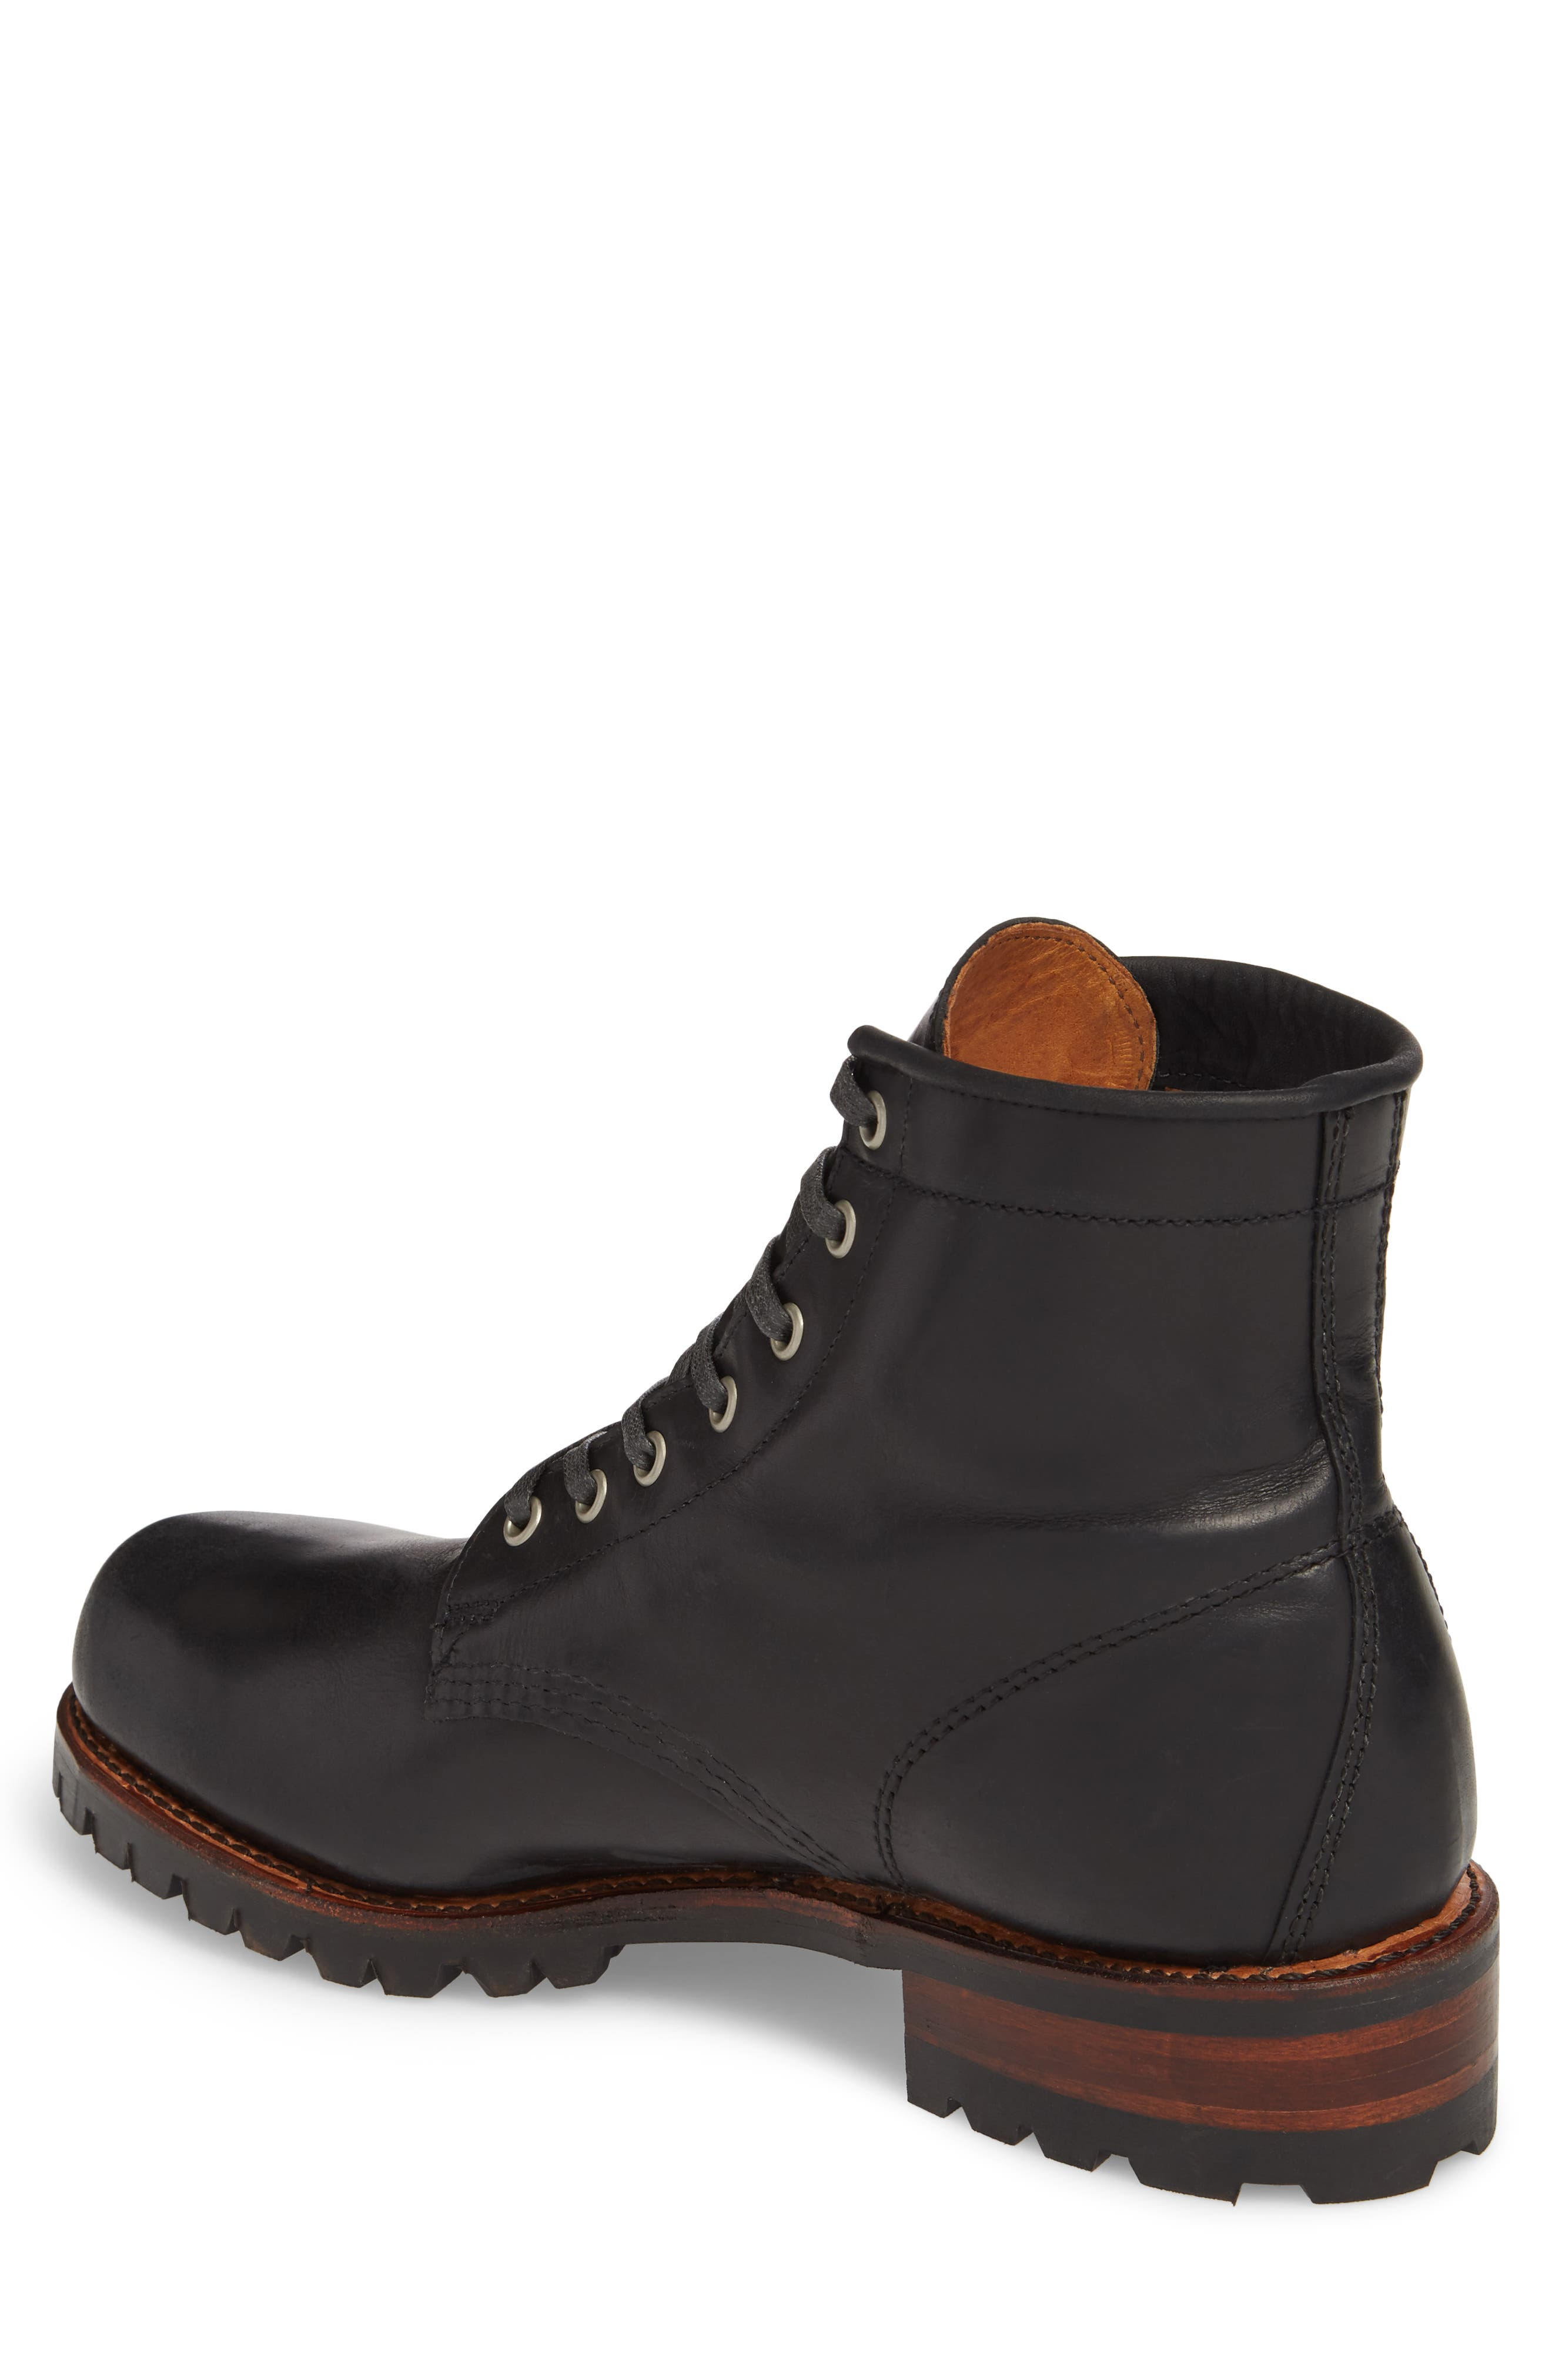 Addison Lace-Up Boot,                             Alternate thumbnail 2, color,                             001